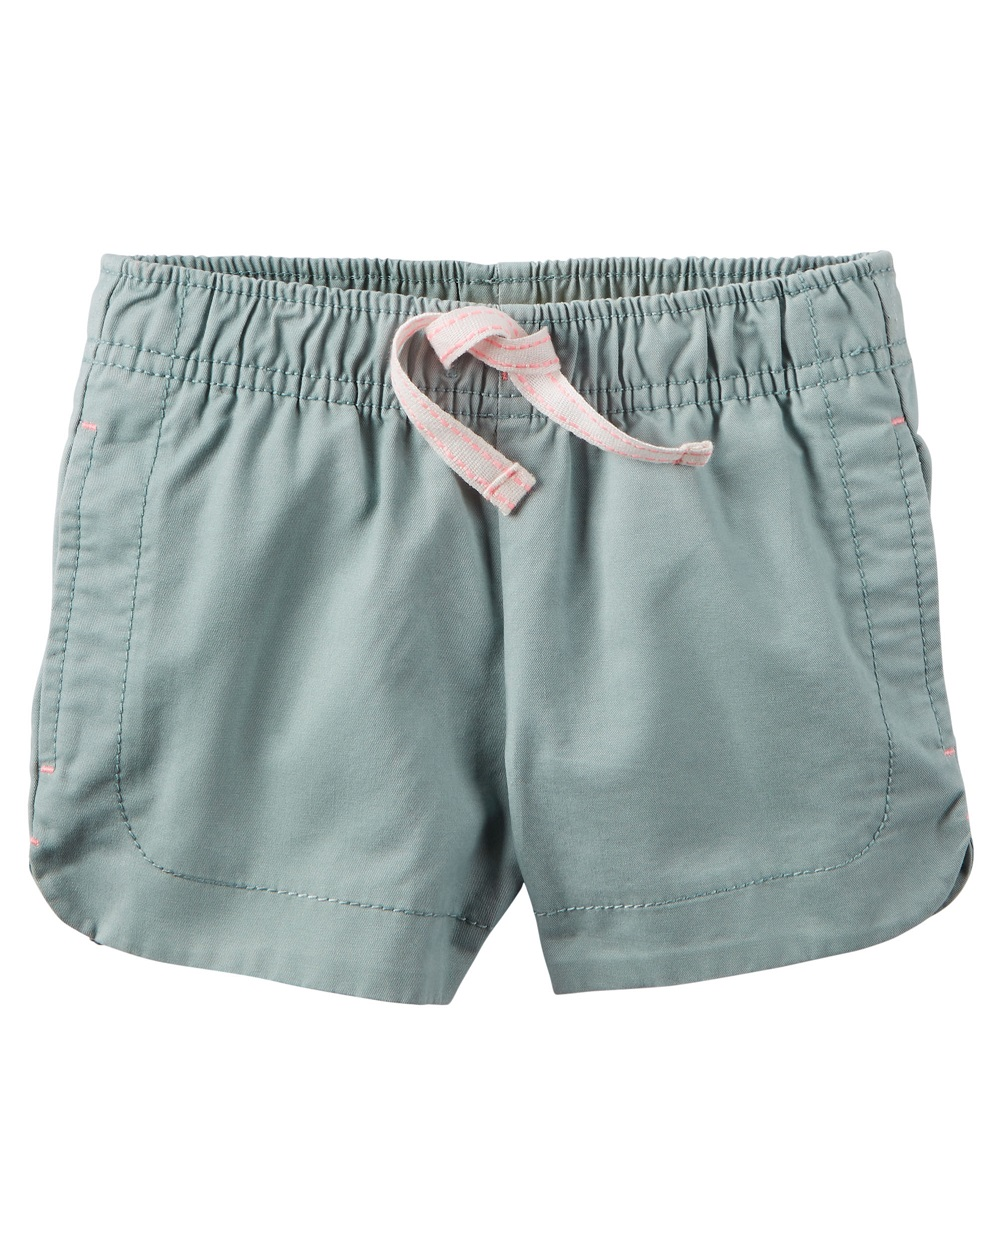 Carter's Baby Girls' Cinch-Up Twill Short, Olive, 3 Months